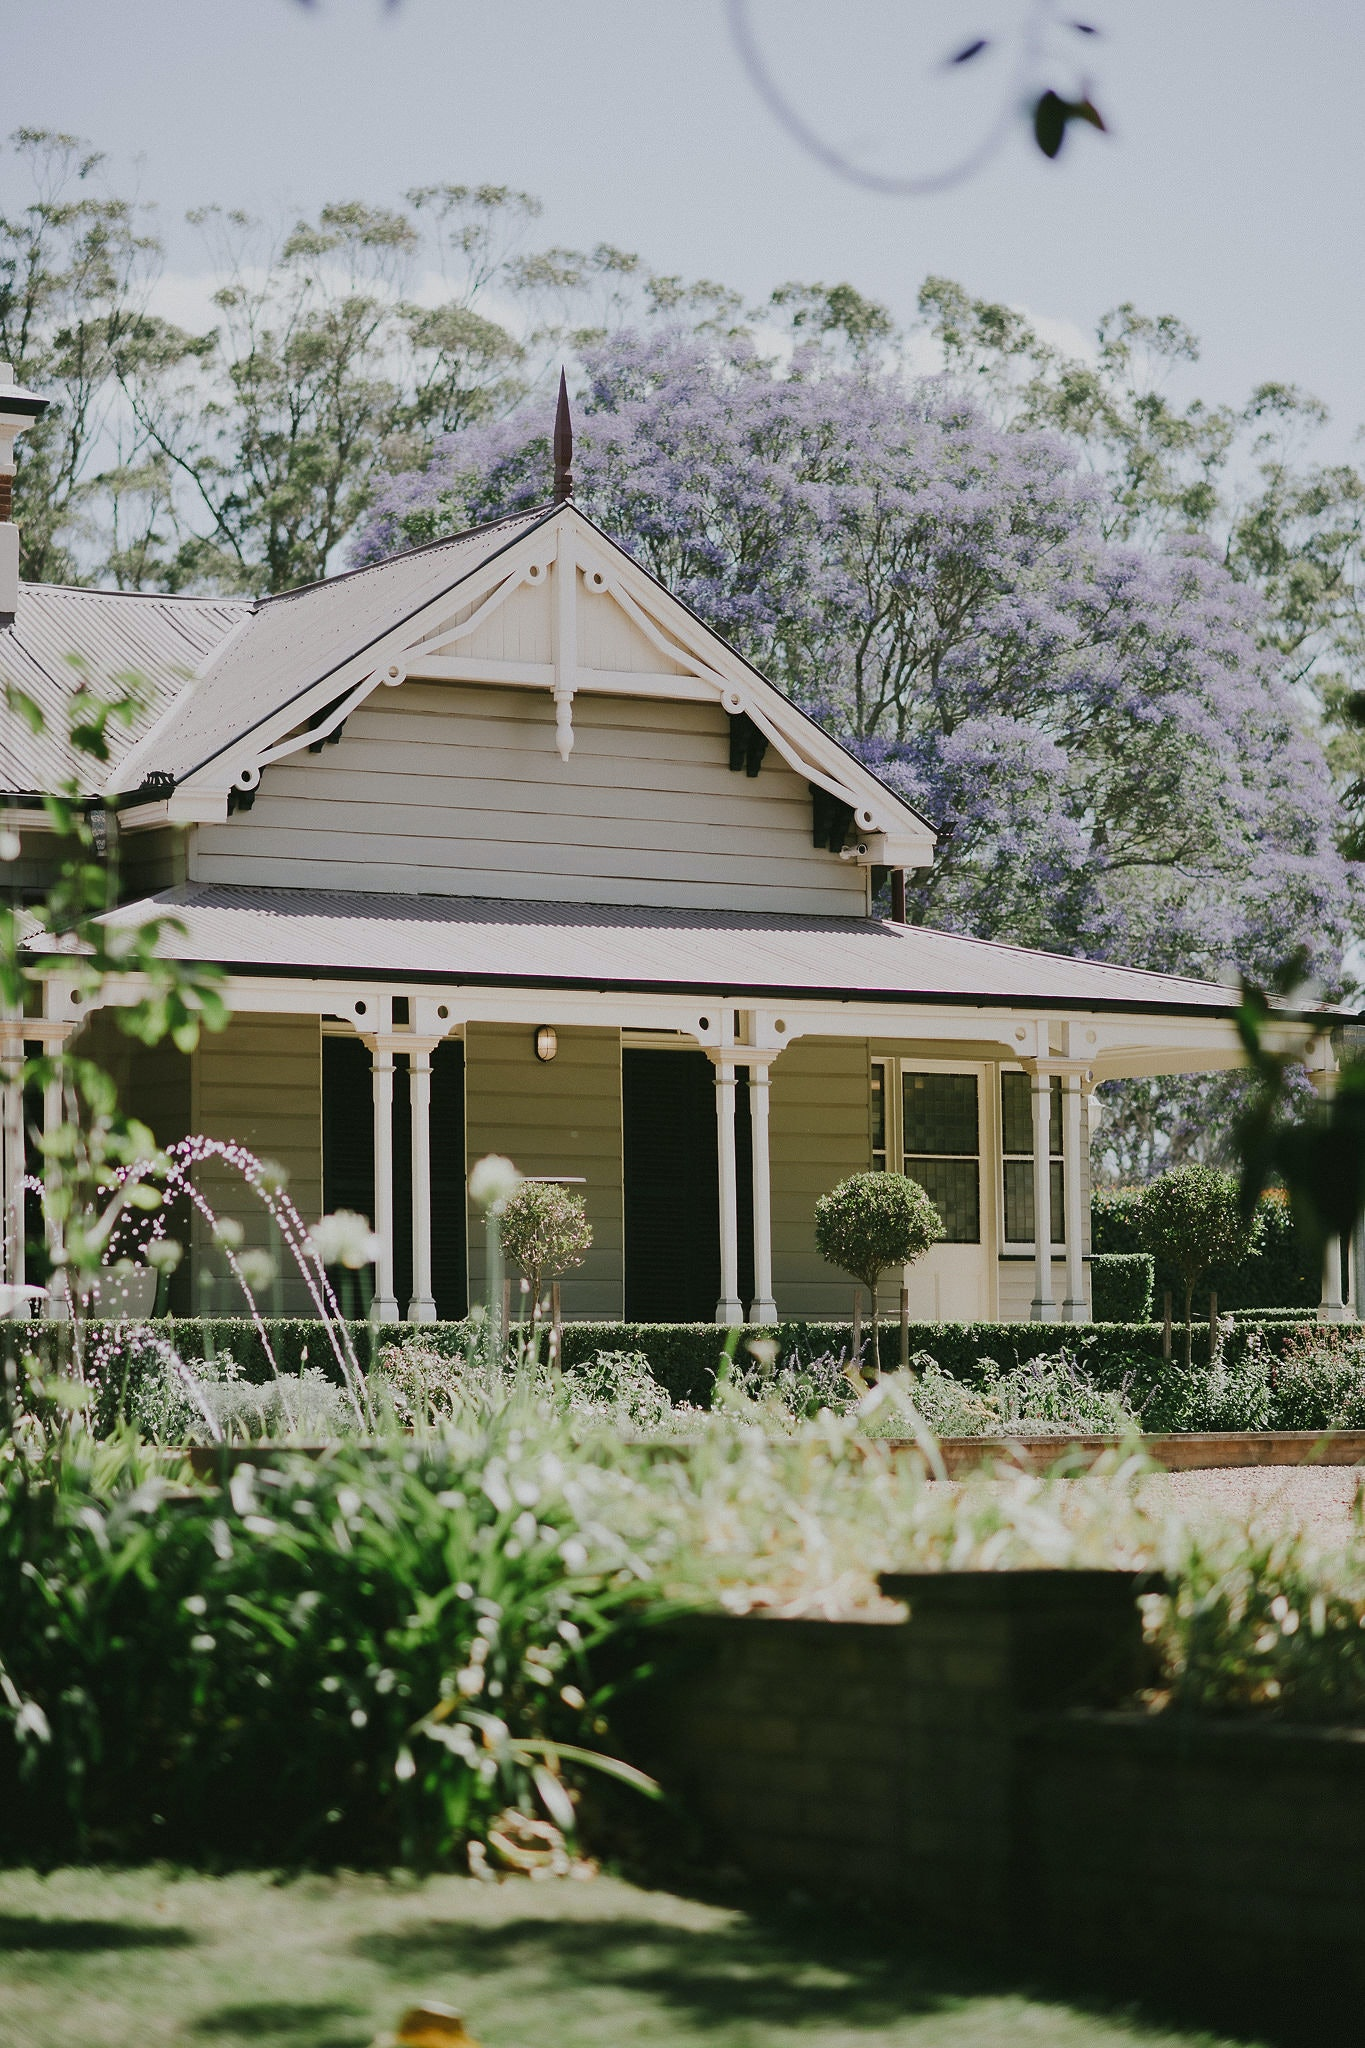 Homestead with Jacaranda tree